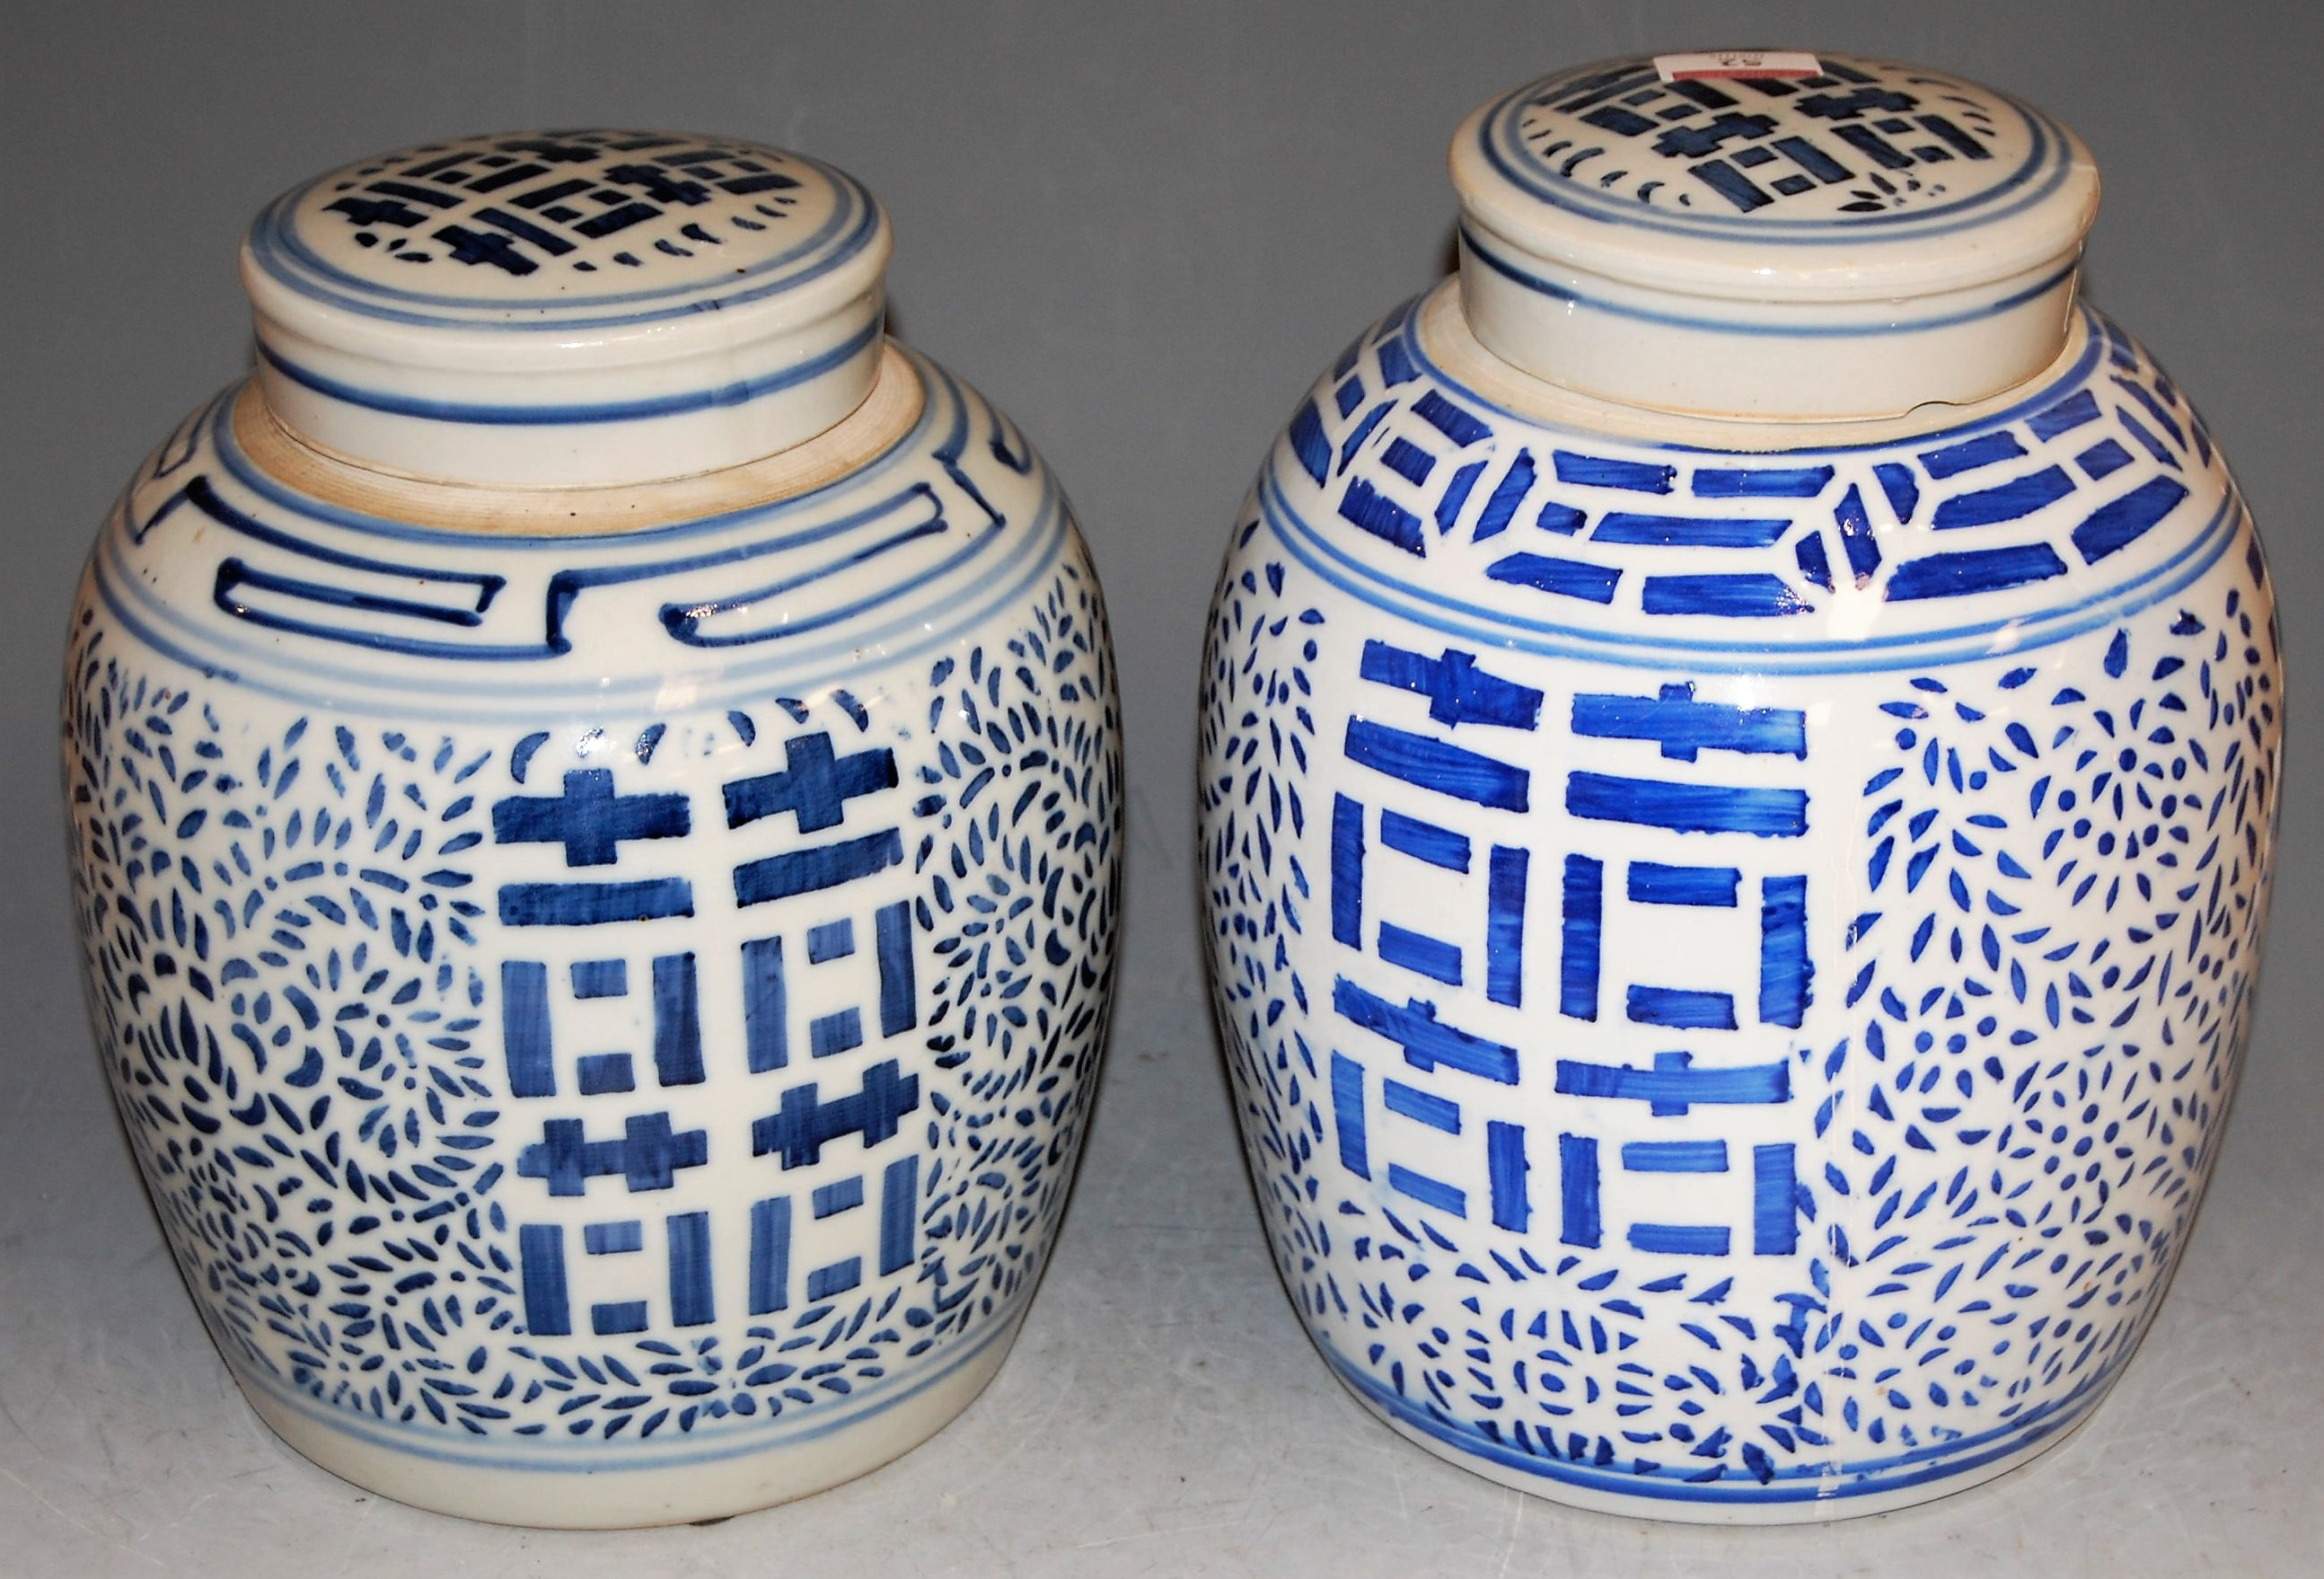 Lot 52 - A pair of modern Chinese blue and white ginger jars and covers, h.26cm